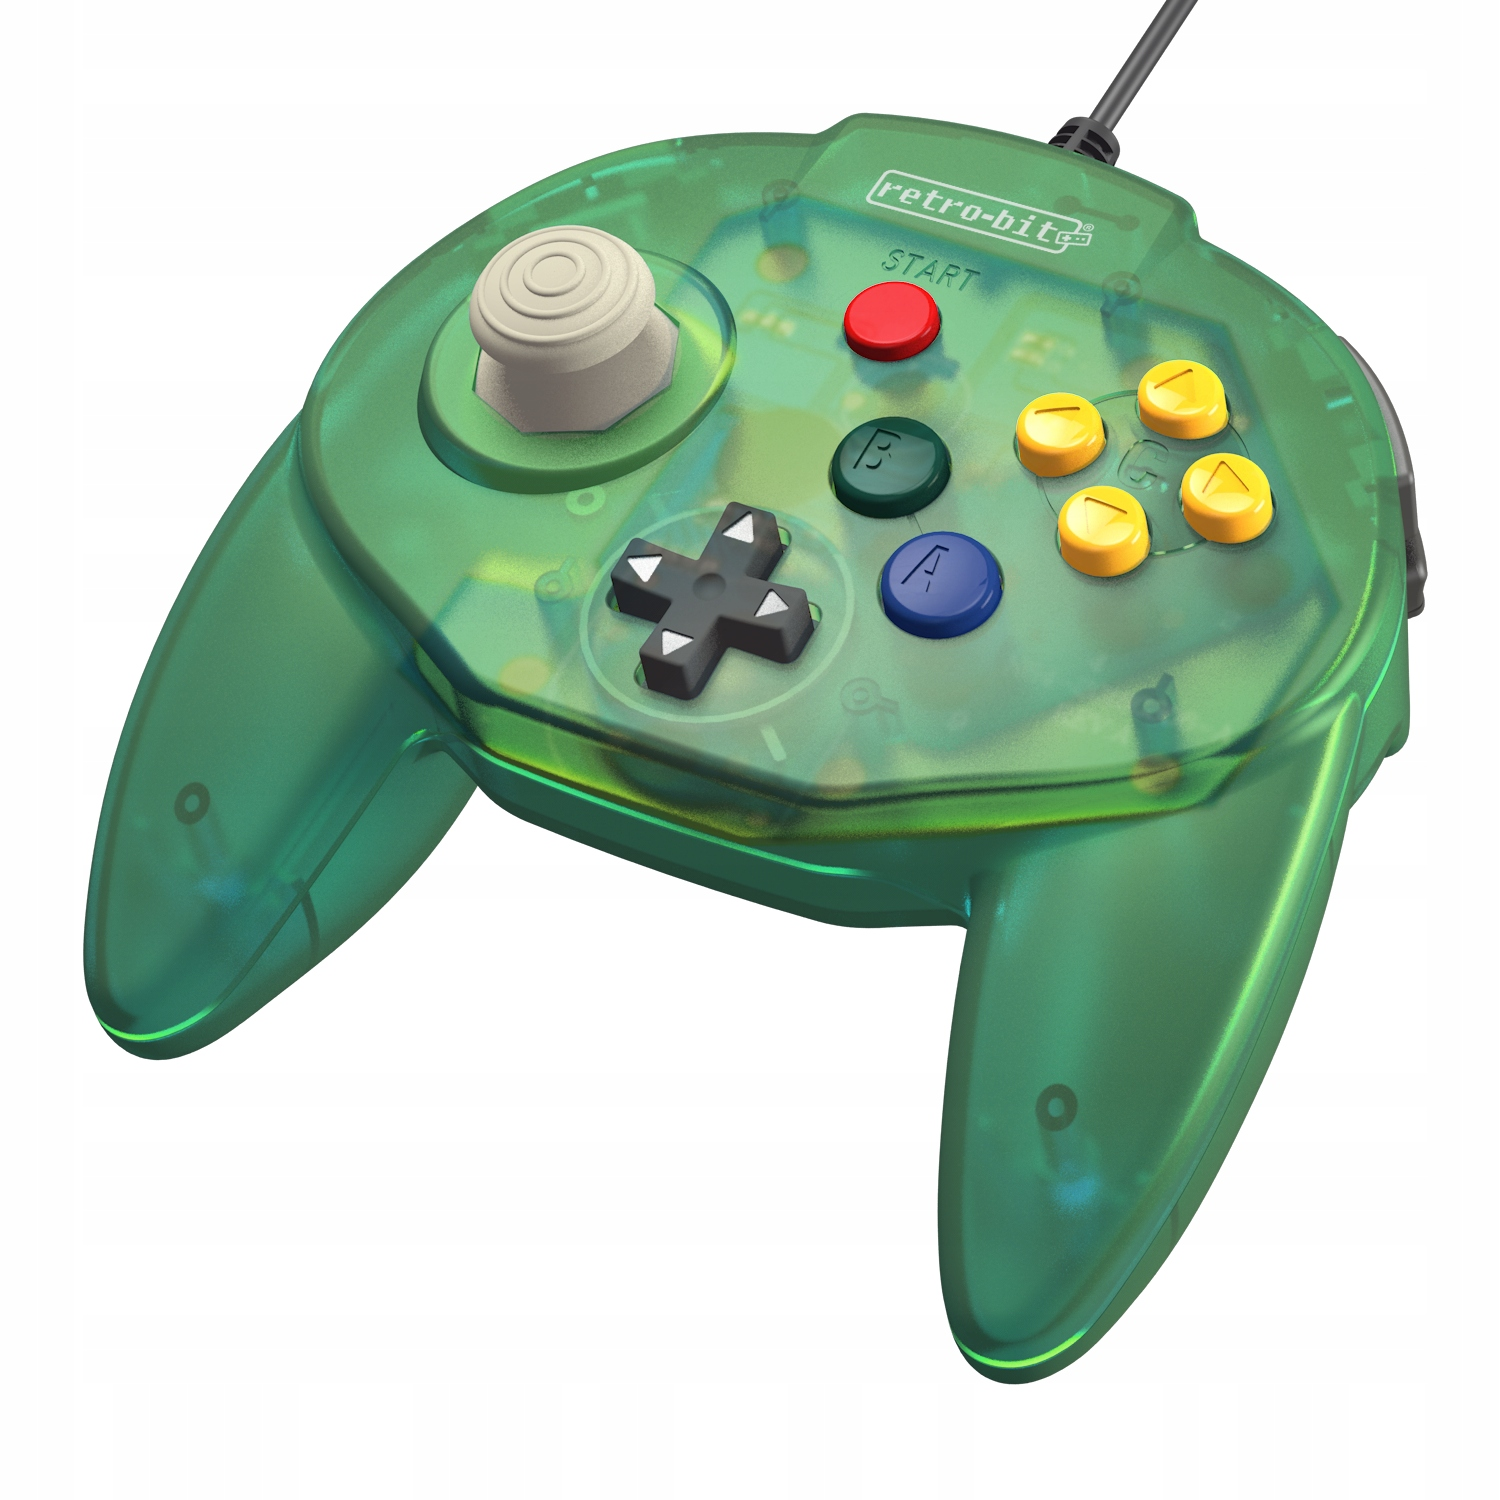 Item Retro-bit Tribute 64 Green Controller Premium 24 HOURS